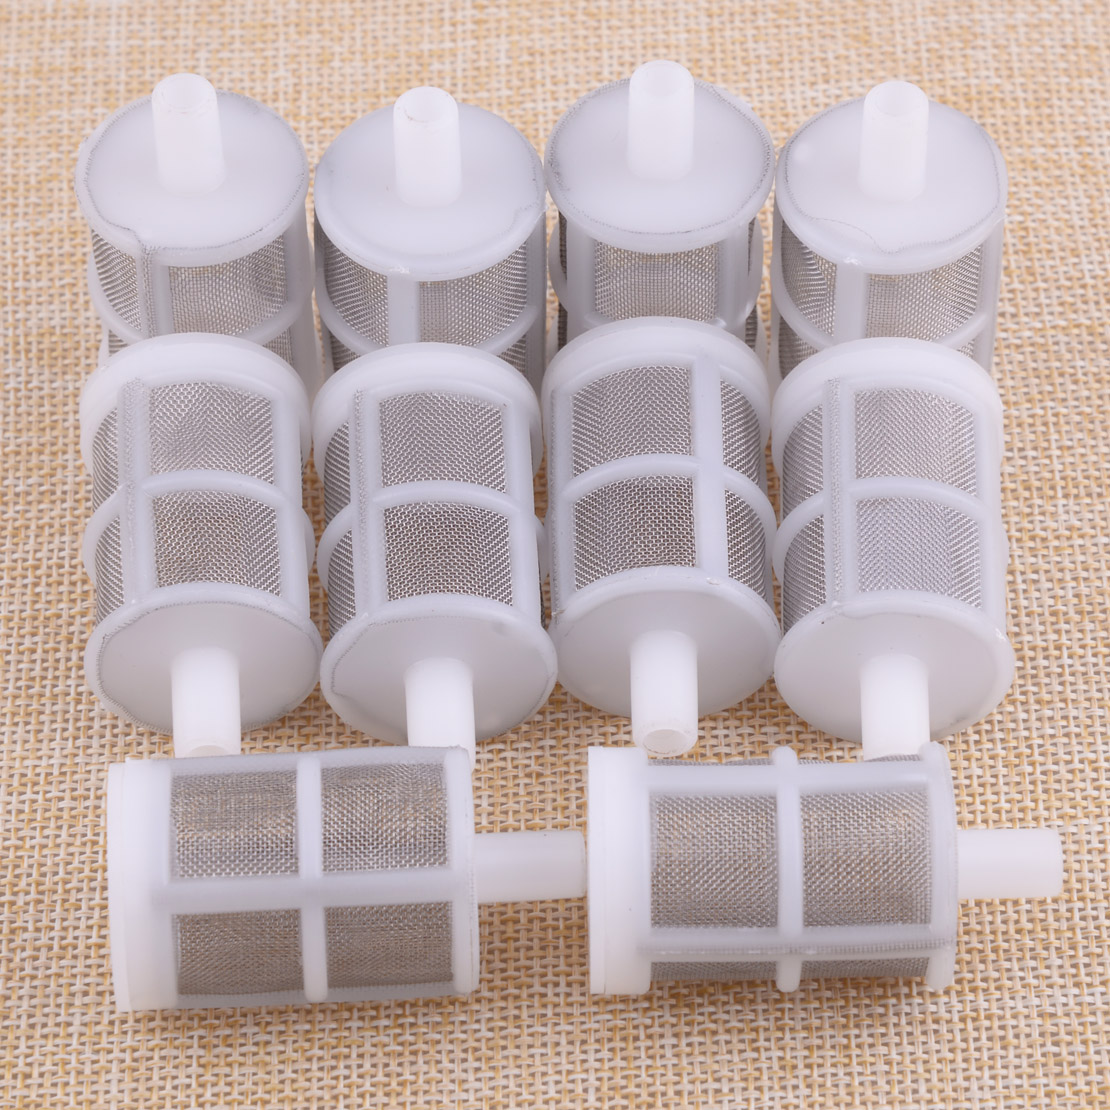 10pcs Stainless Steel Mesh Inching Siphon Filter Home Brew Homebrew Wine Making Tool